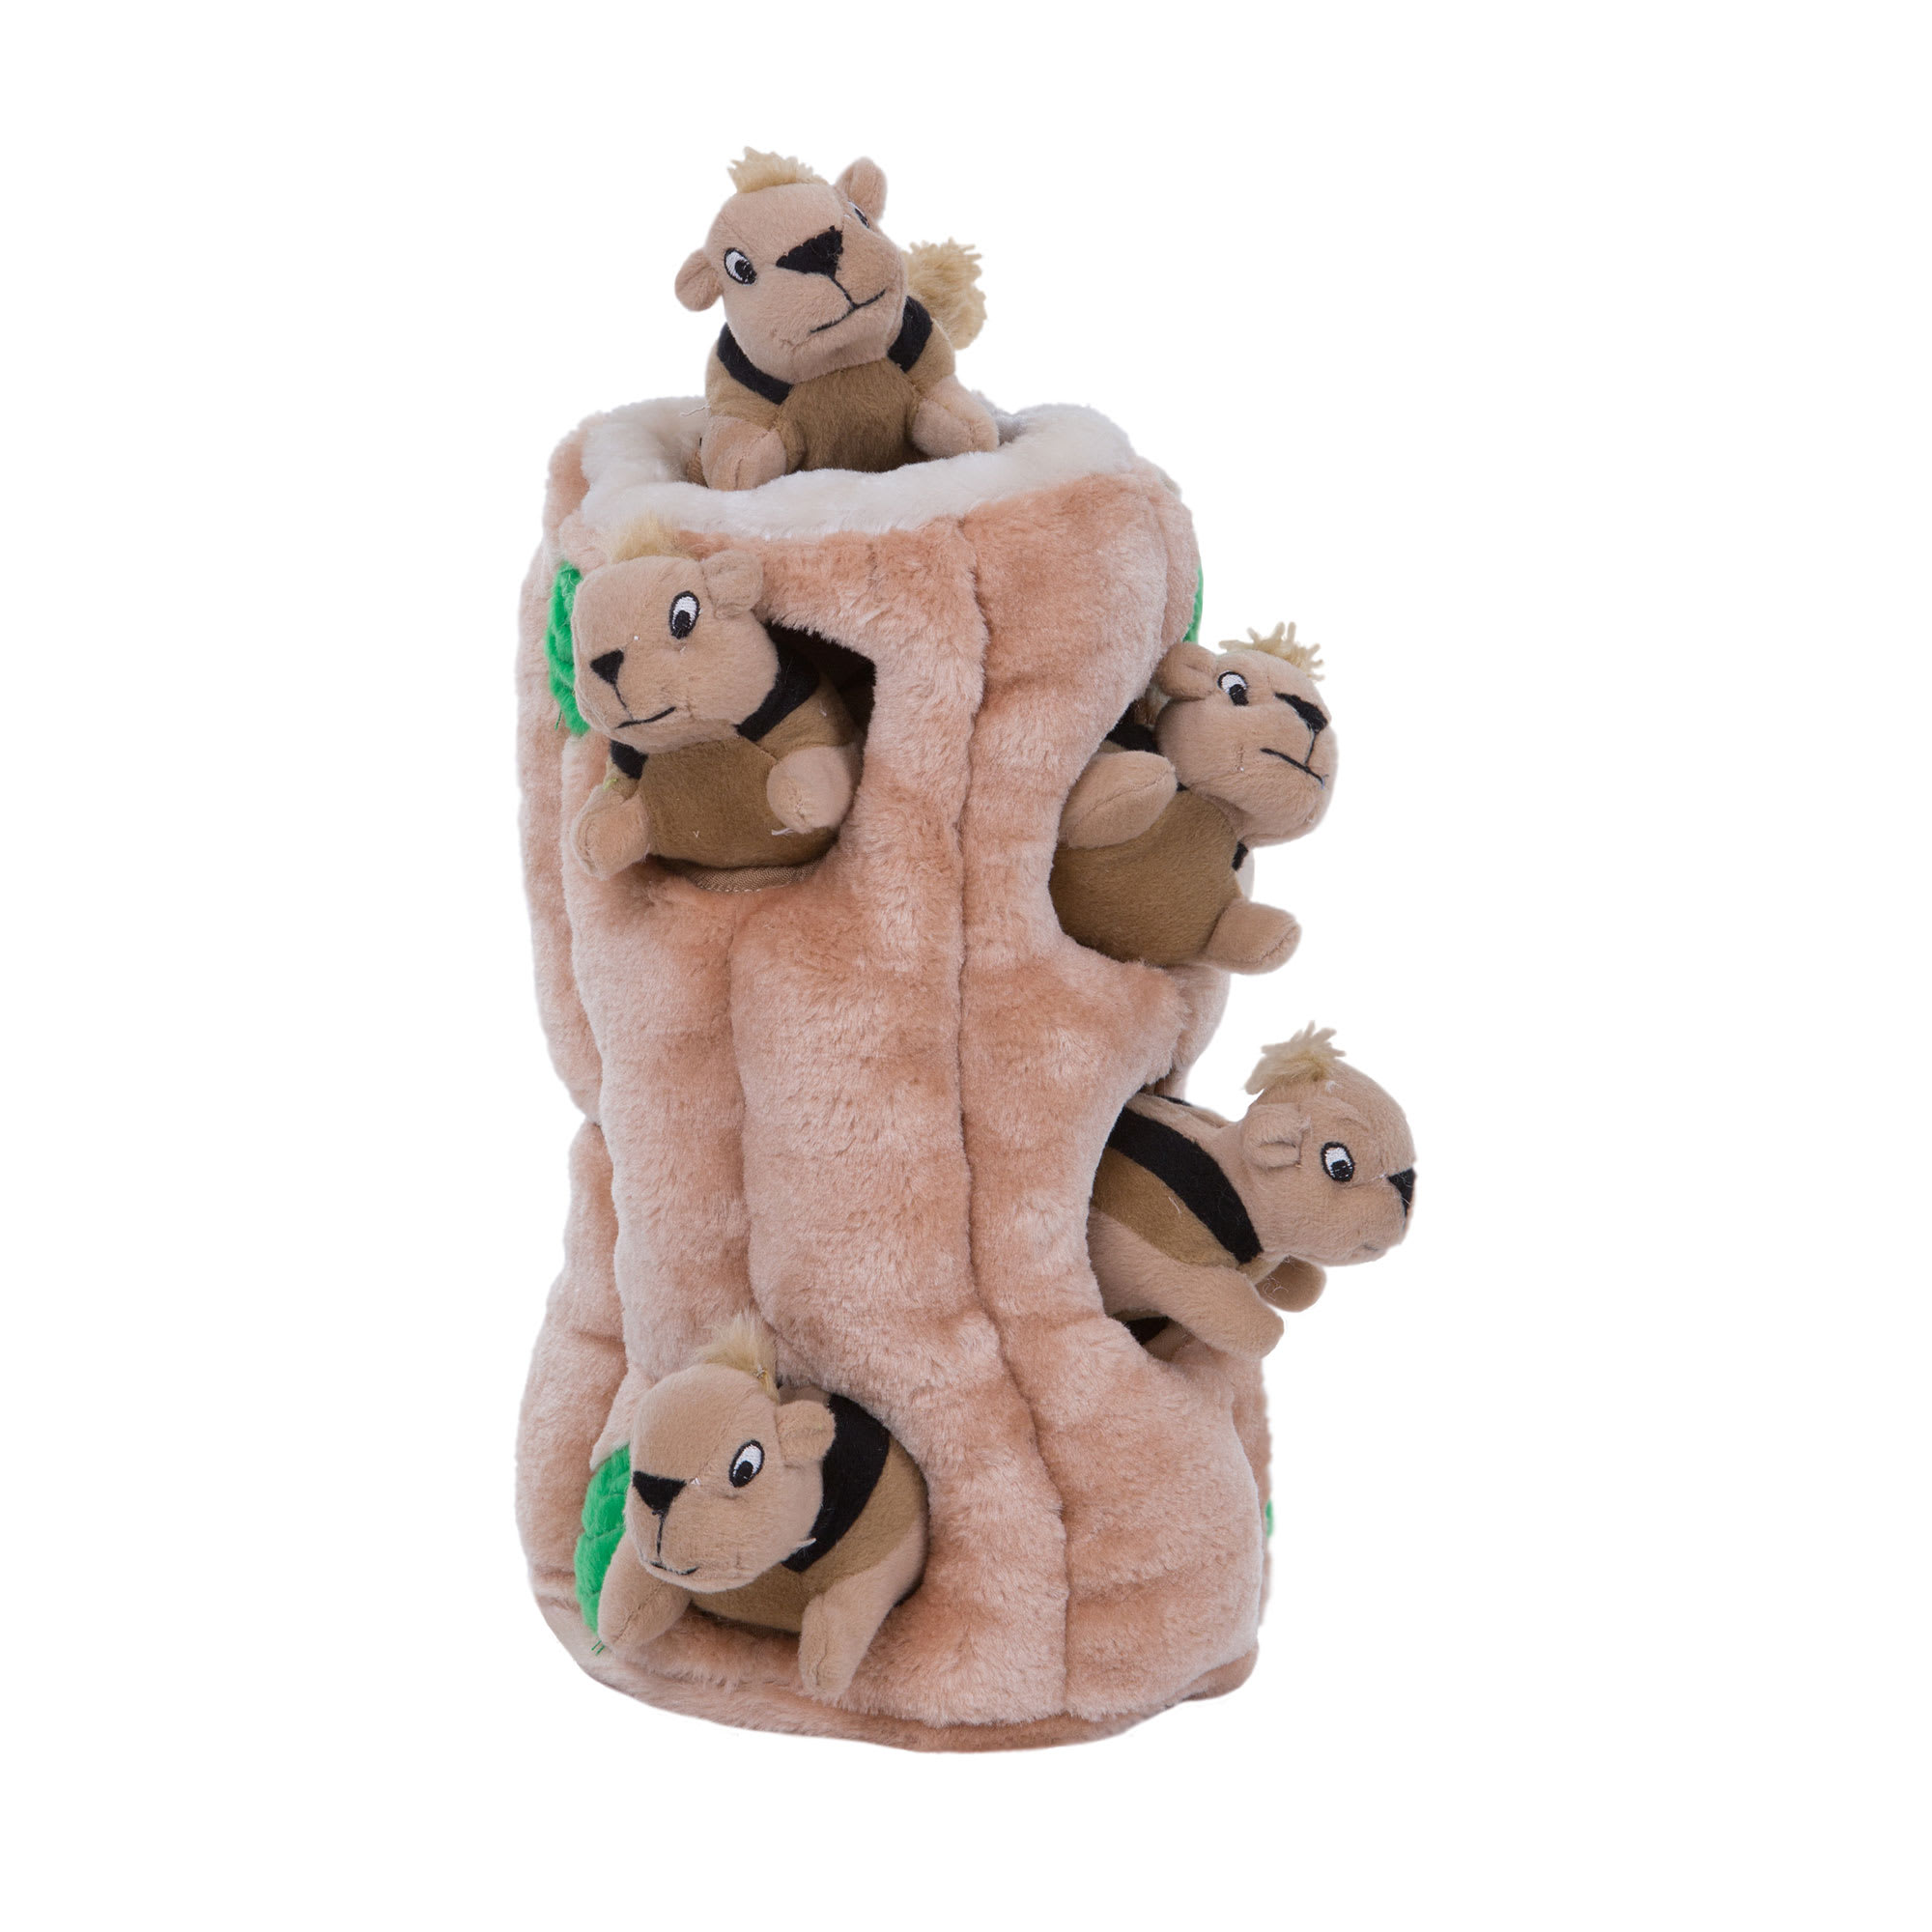 Outward Hound Plush Puppies HIDE A SQUIRREL Dog Puzzle Problem Solving Toy Large